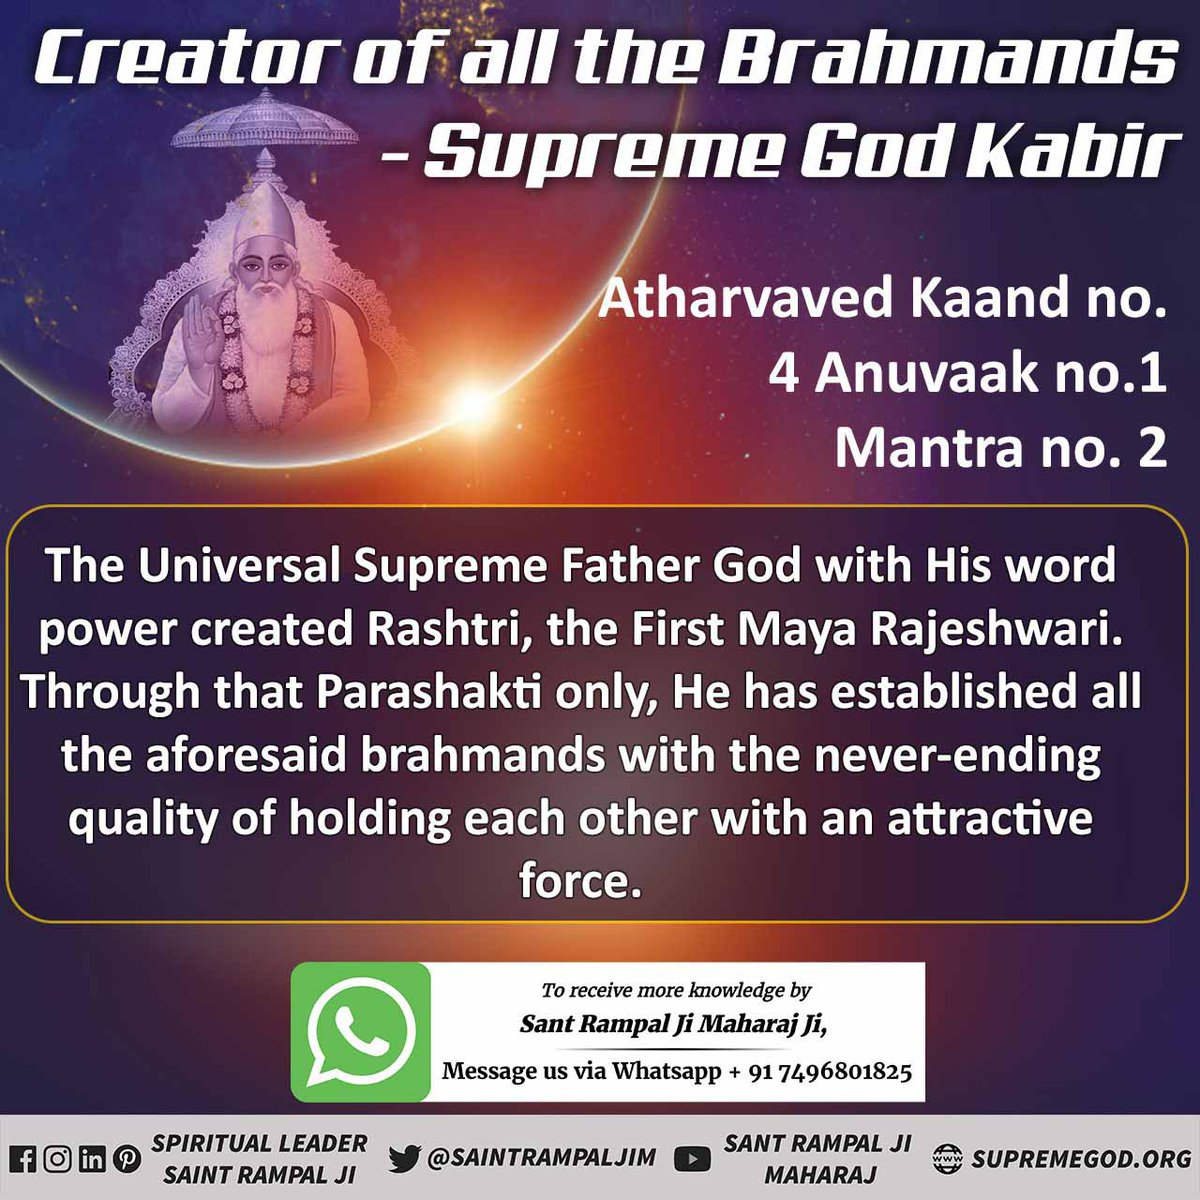 Replying to @MukeshD55636952: Creator Of all the Brahmand is #SupremeGodKabir Atharvaved Kaand No. 4 Anuvaak No. 1 Mantra 2. …